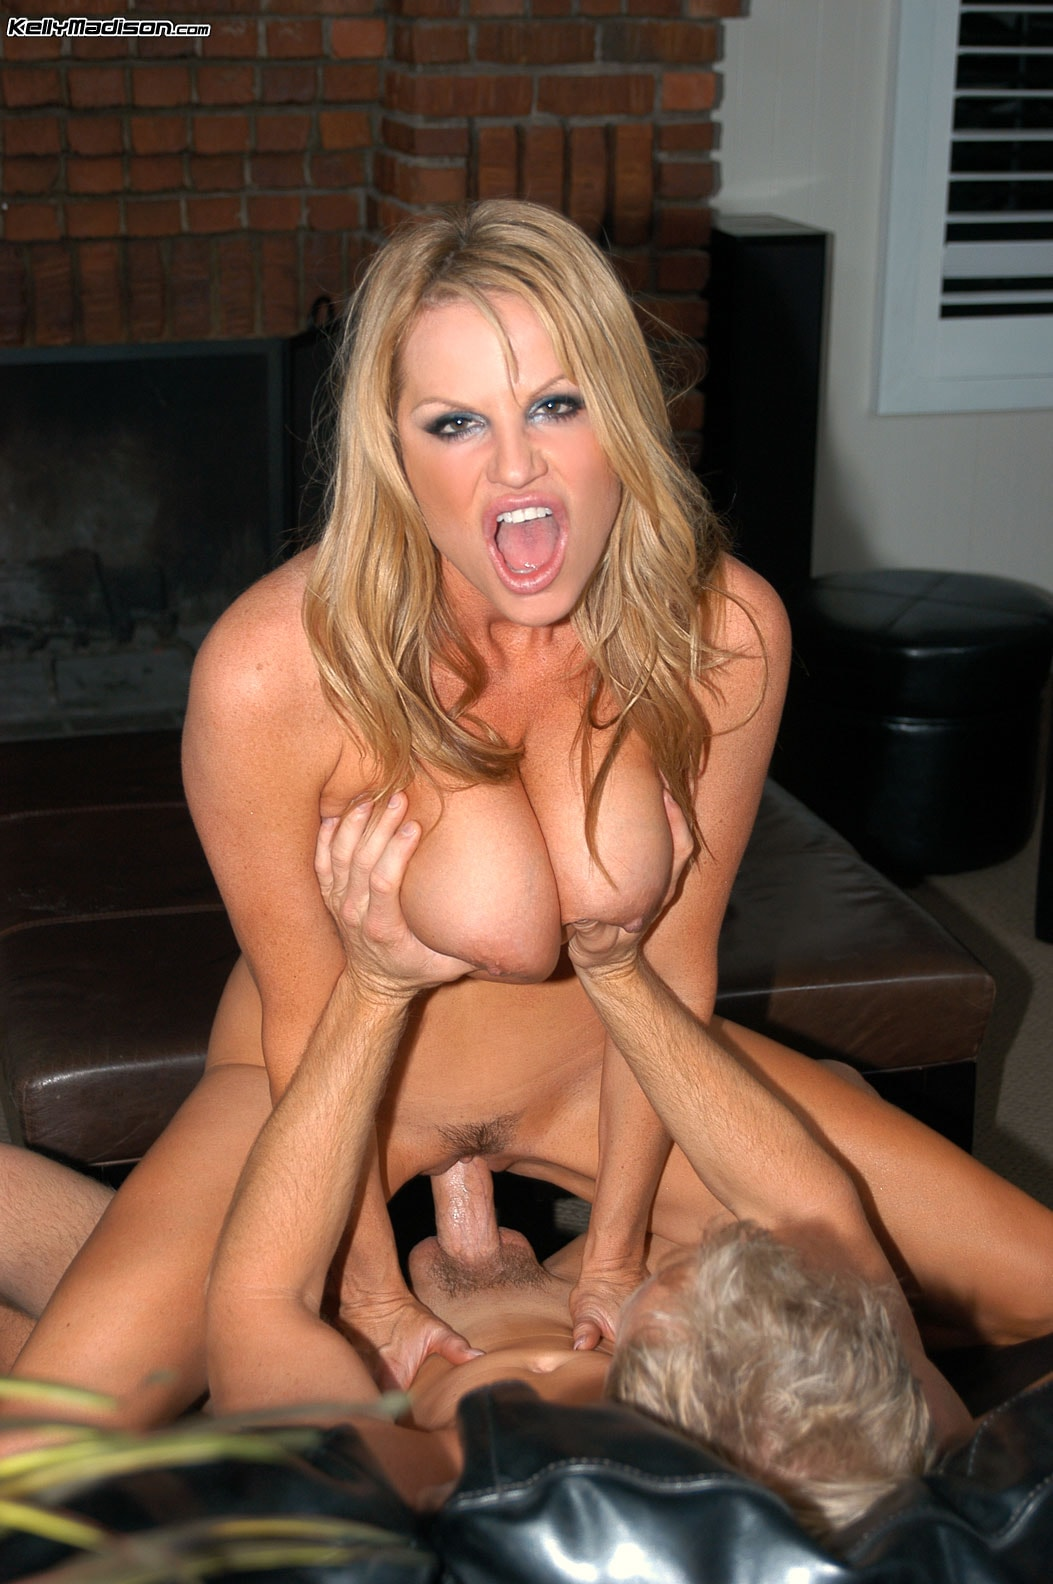 Kelly madison huge cock